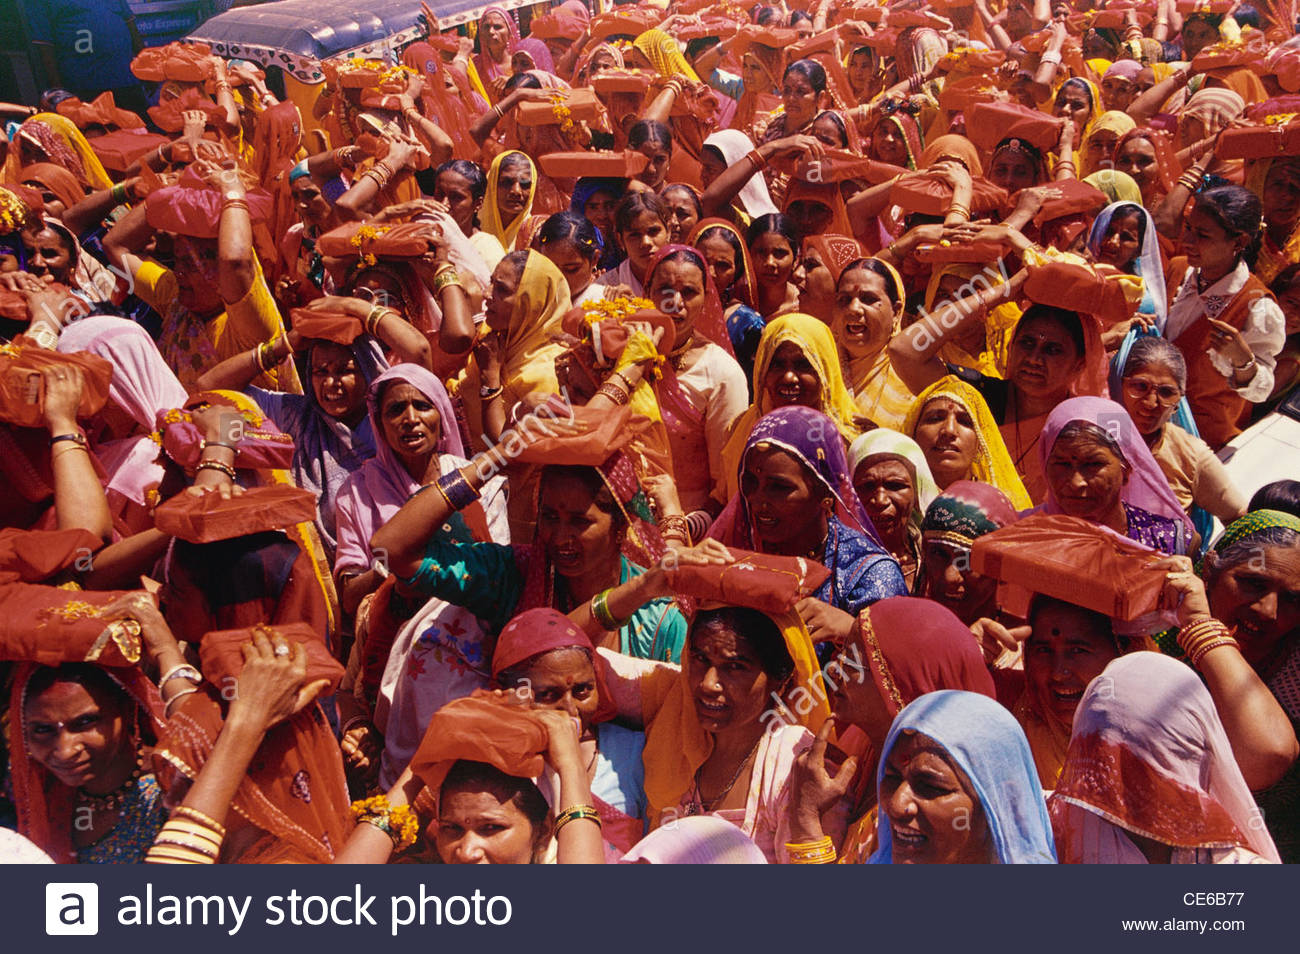 women carrying bhagwat geeta Bhagavad gita on head in a religious procession ; Jodhpur ; Rajasthan ; India - Stock Image